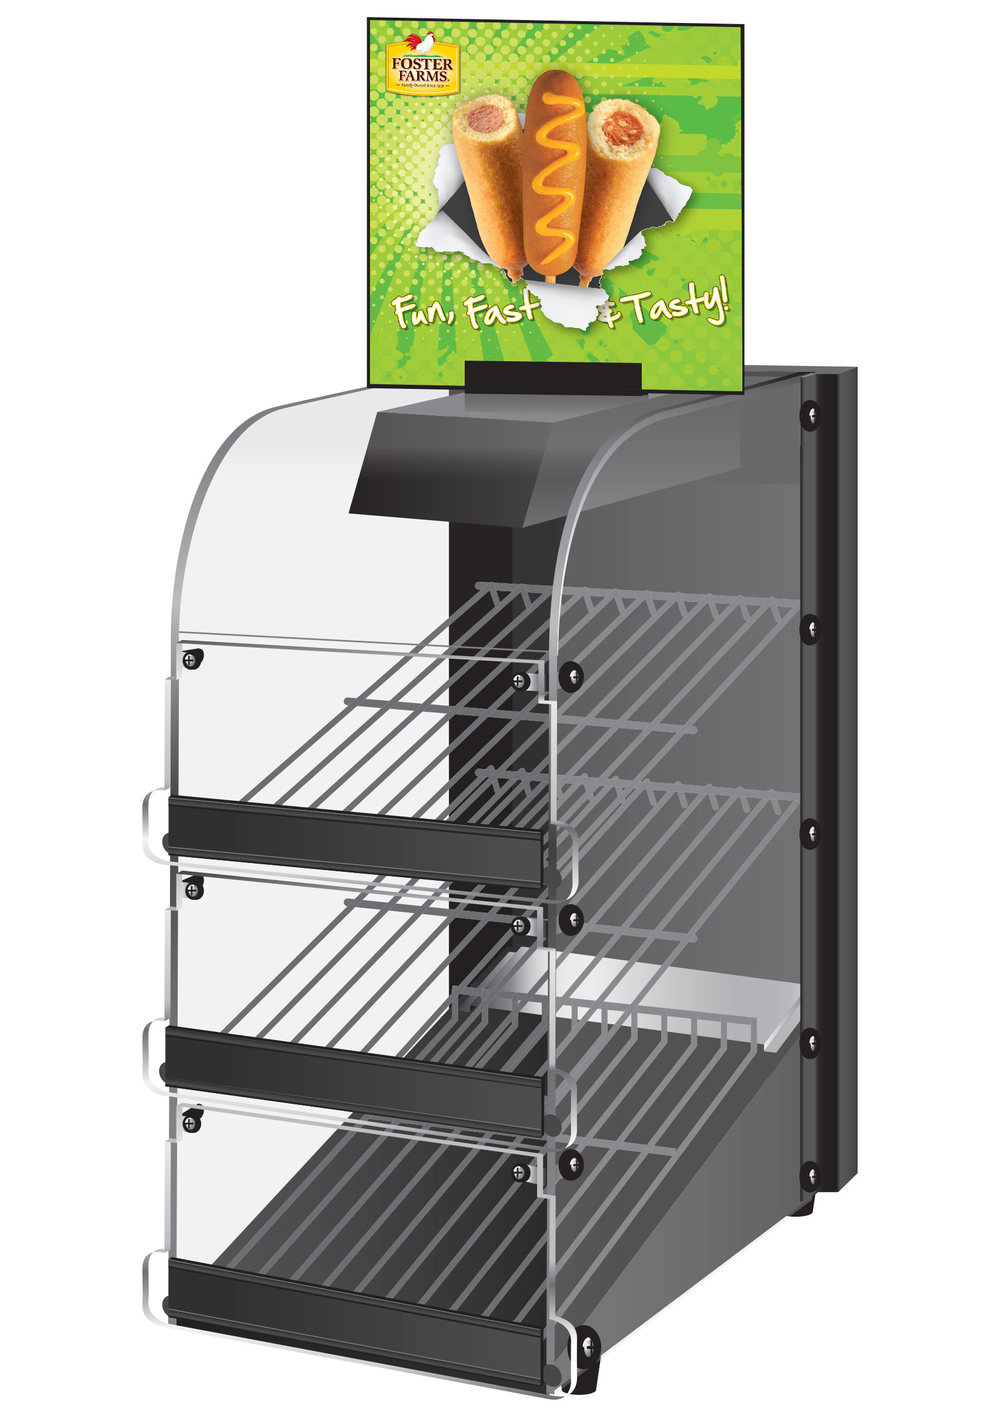 FosterFarms-CornDog-780Warmer.jpg